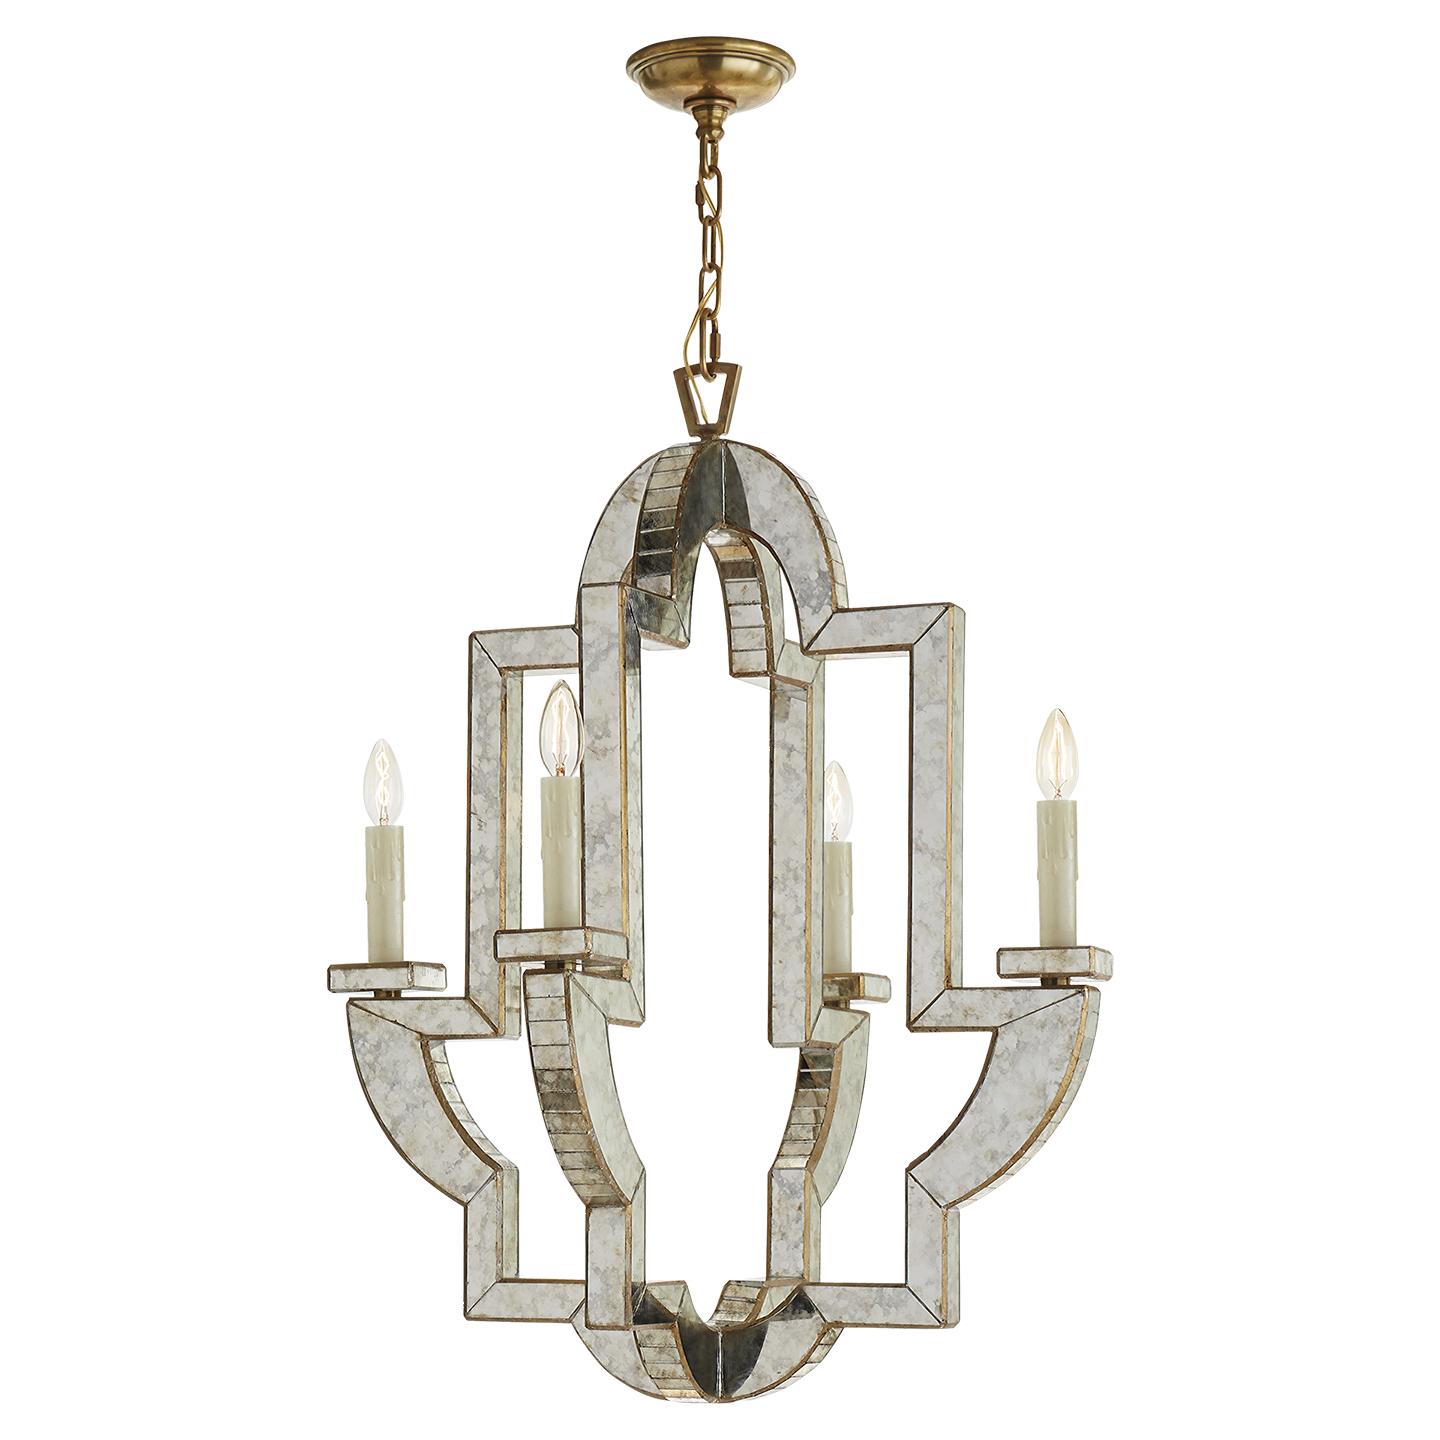 Shop for Mercury Glass Chandelier at Foundry Lighting